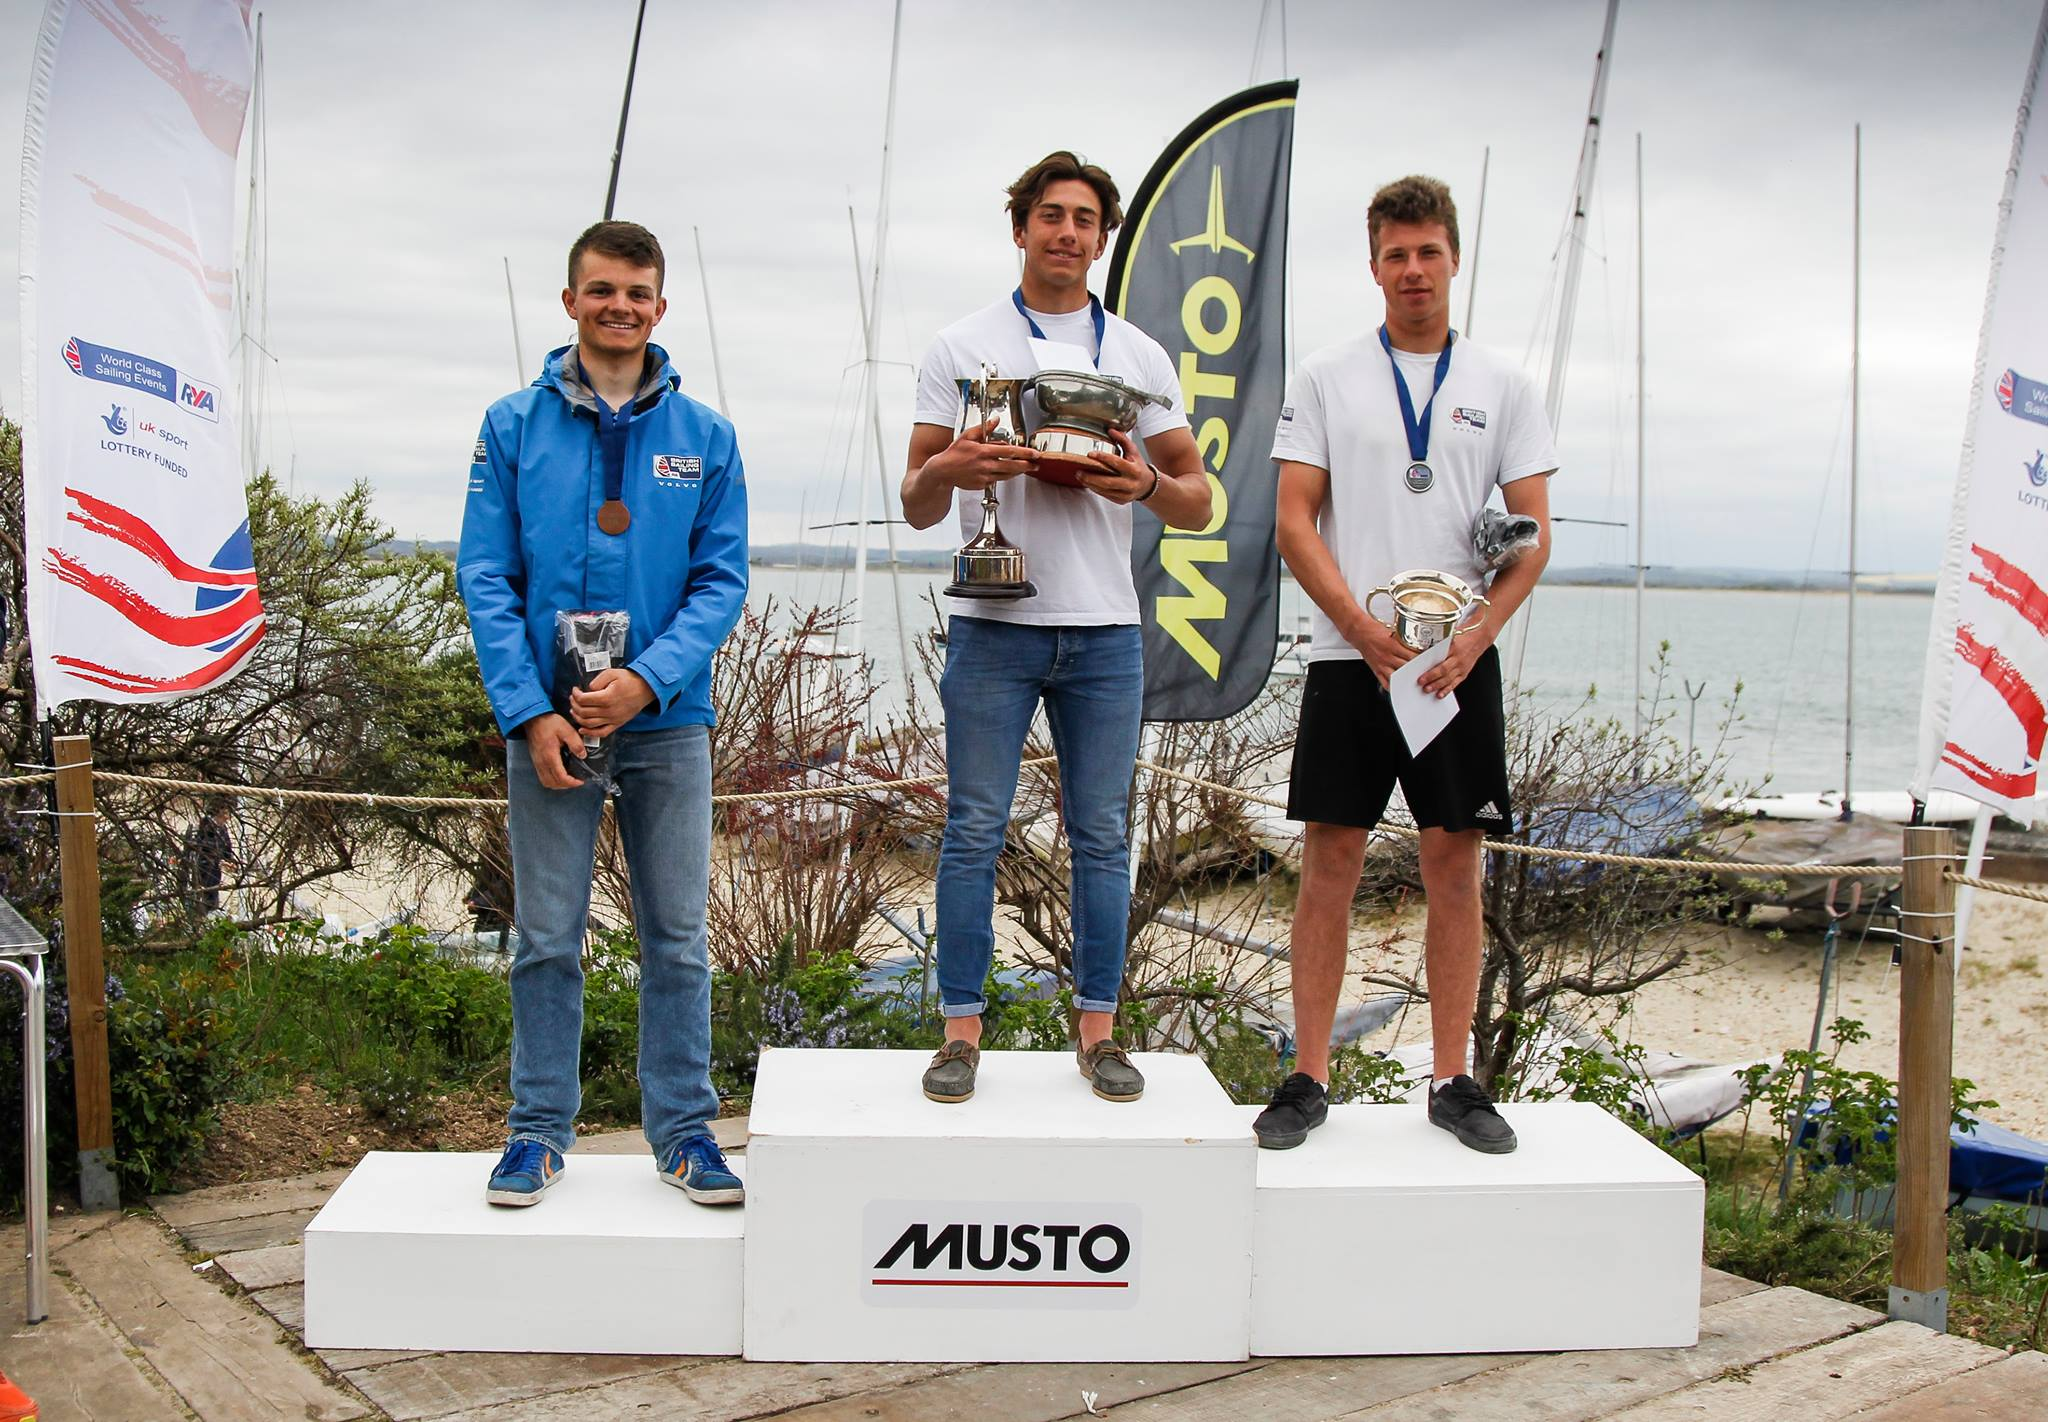 On the podium with my teammates Dan Whiteley and Jack Cookson. Photo credits: RYA/Paul Wyeth.